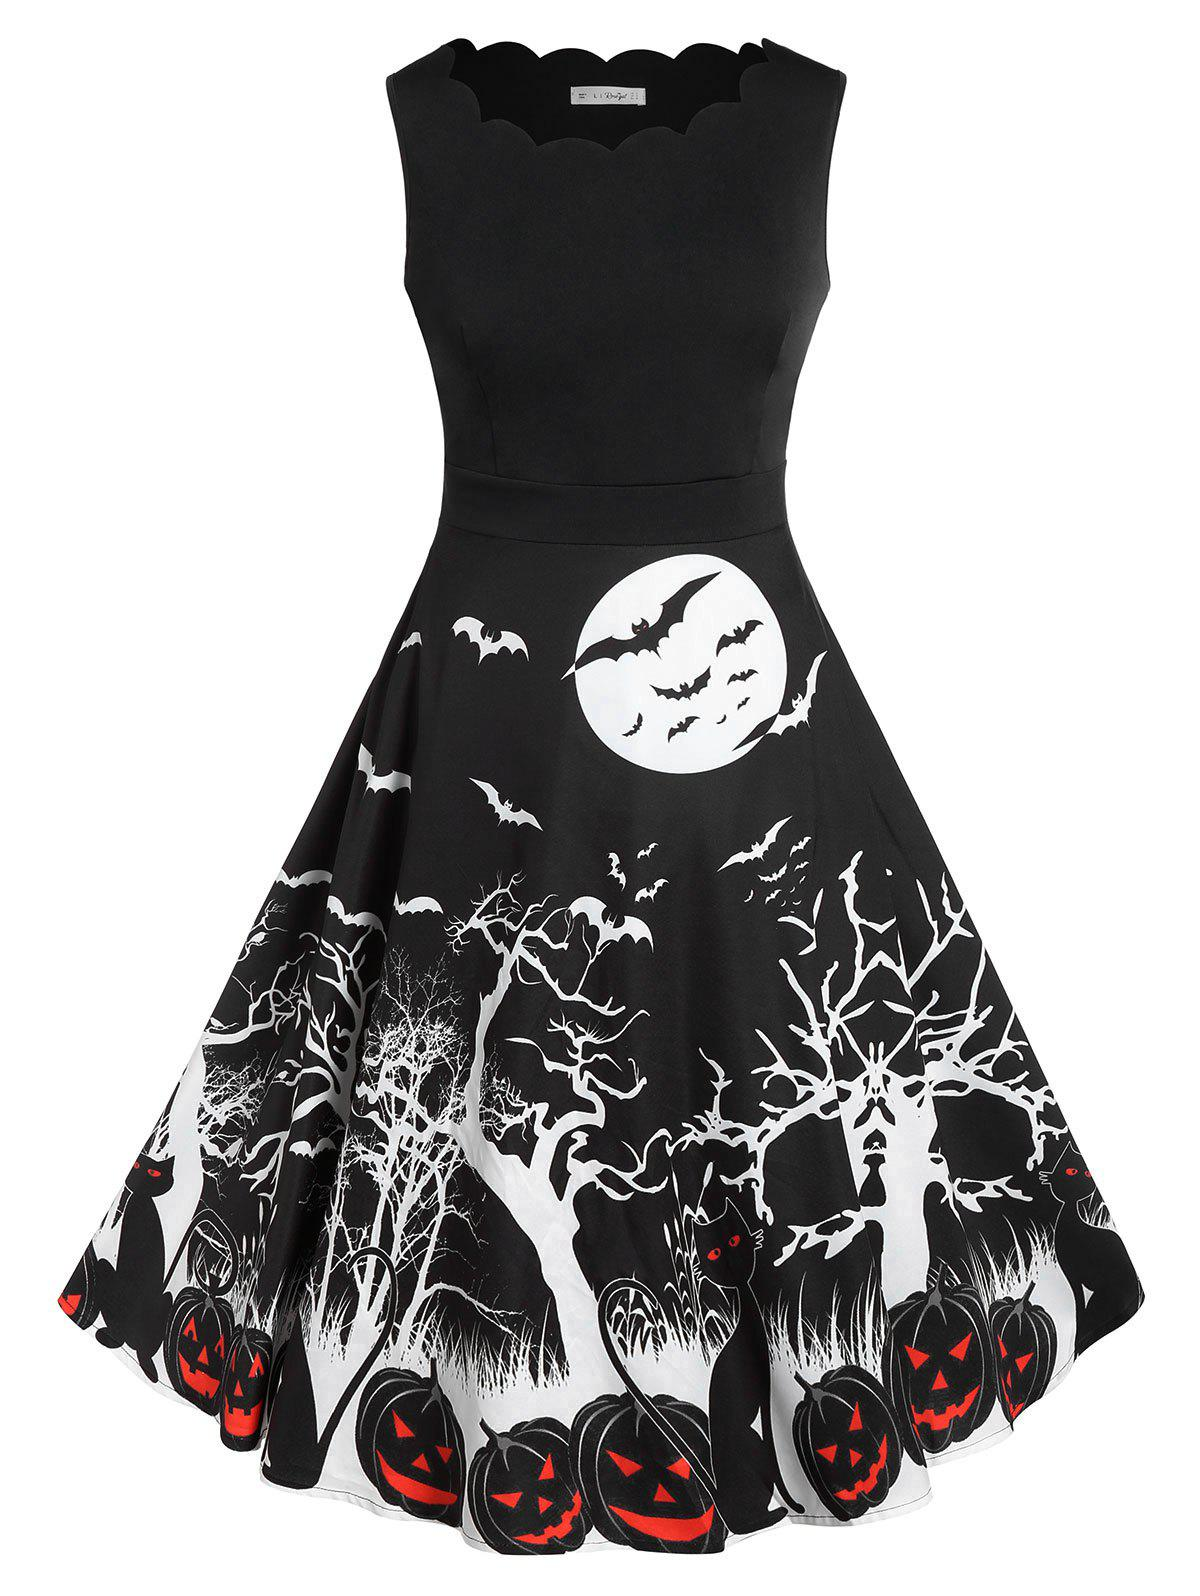 Unique Plus Size Retro Pumpkin Bat Print Halloween Dress